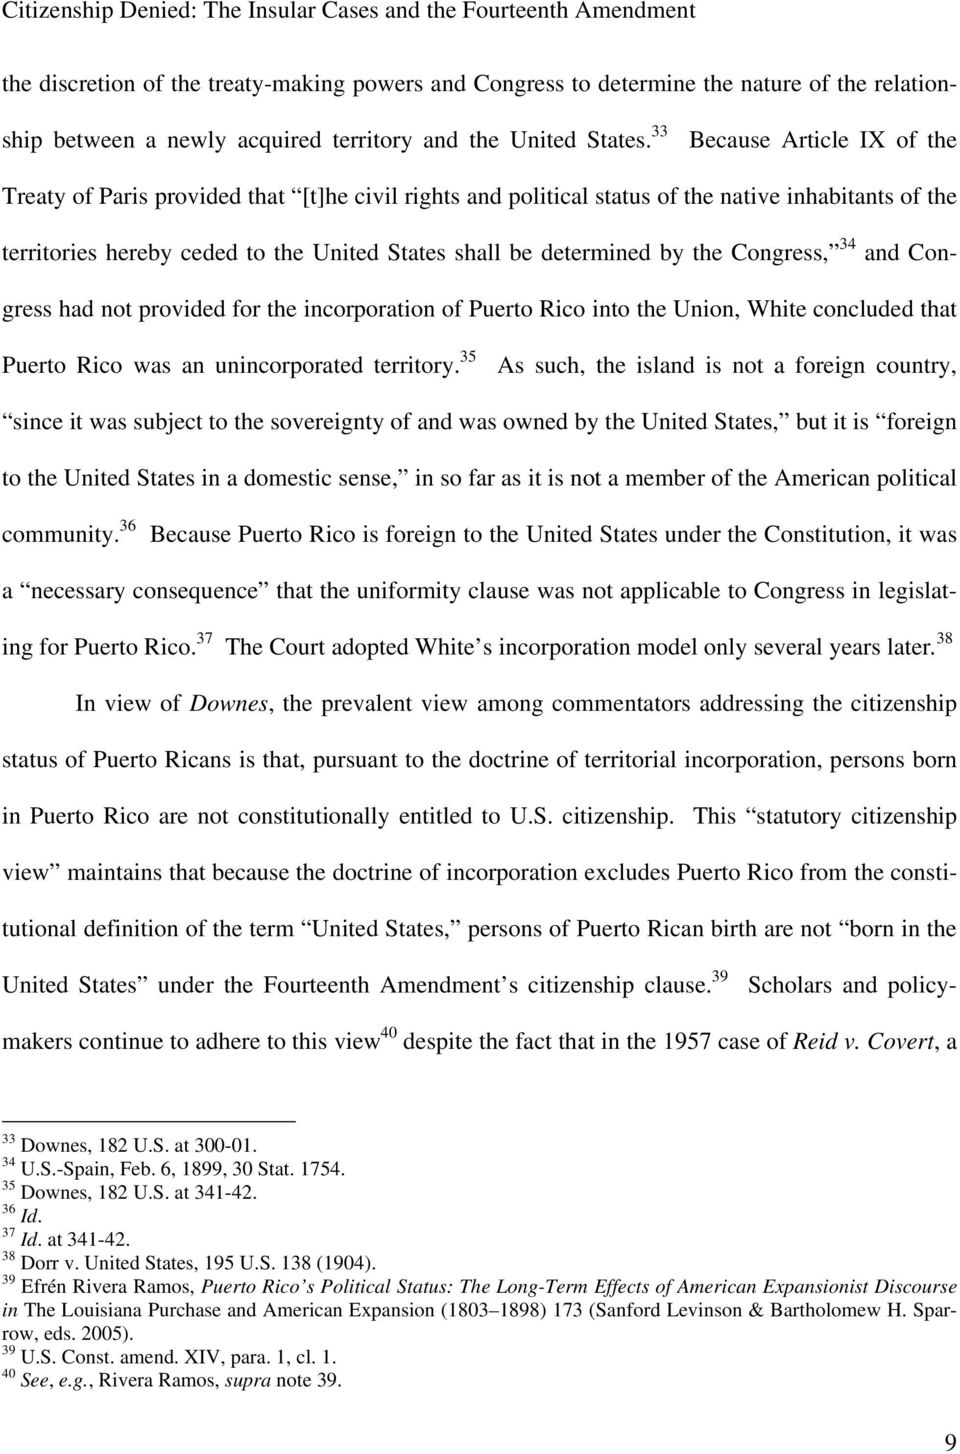 by the Congress, 34 and Congress had not provided for the incorporation of Puerto Rico into the Union, White concluded that Puerto Rico was an unincorporated territory.